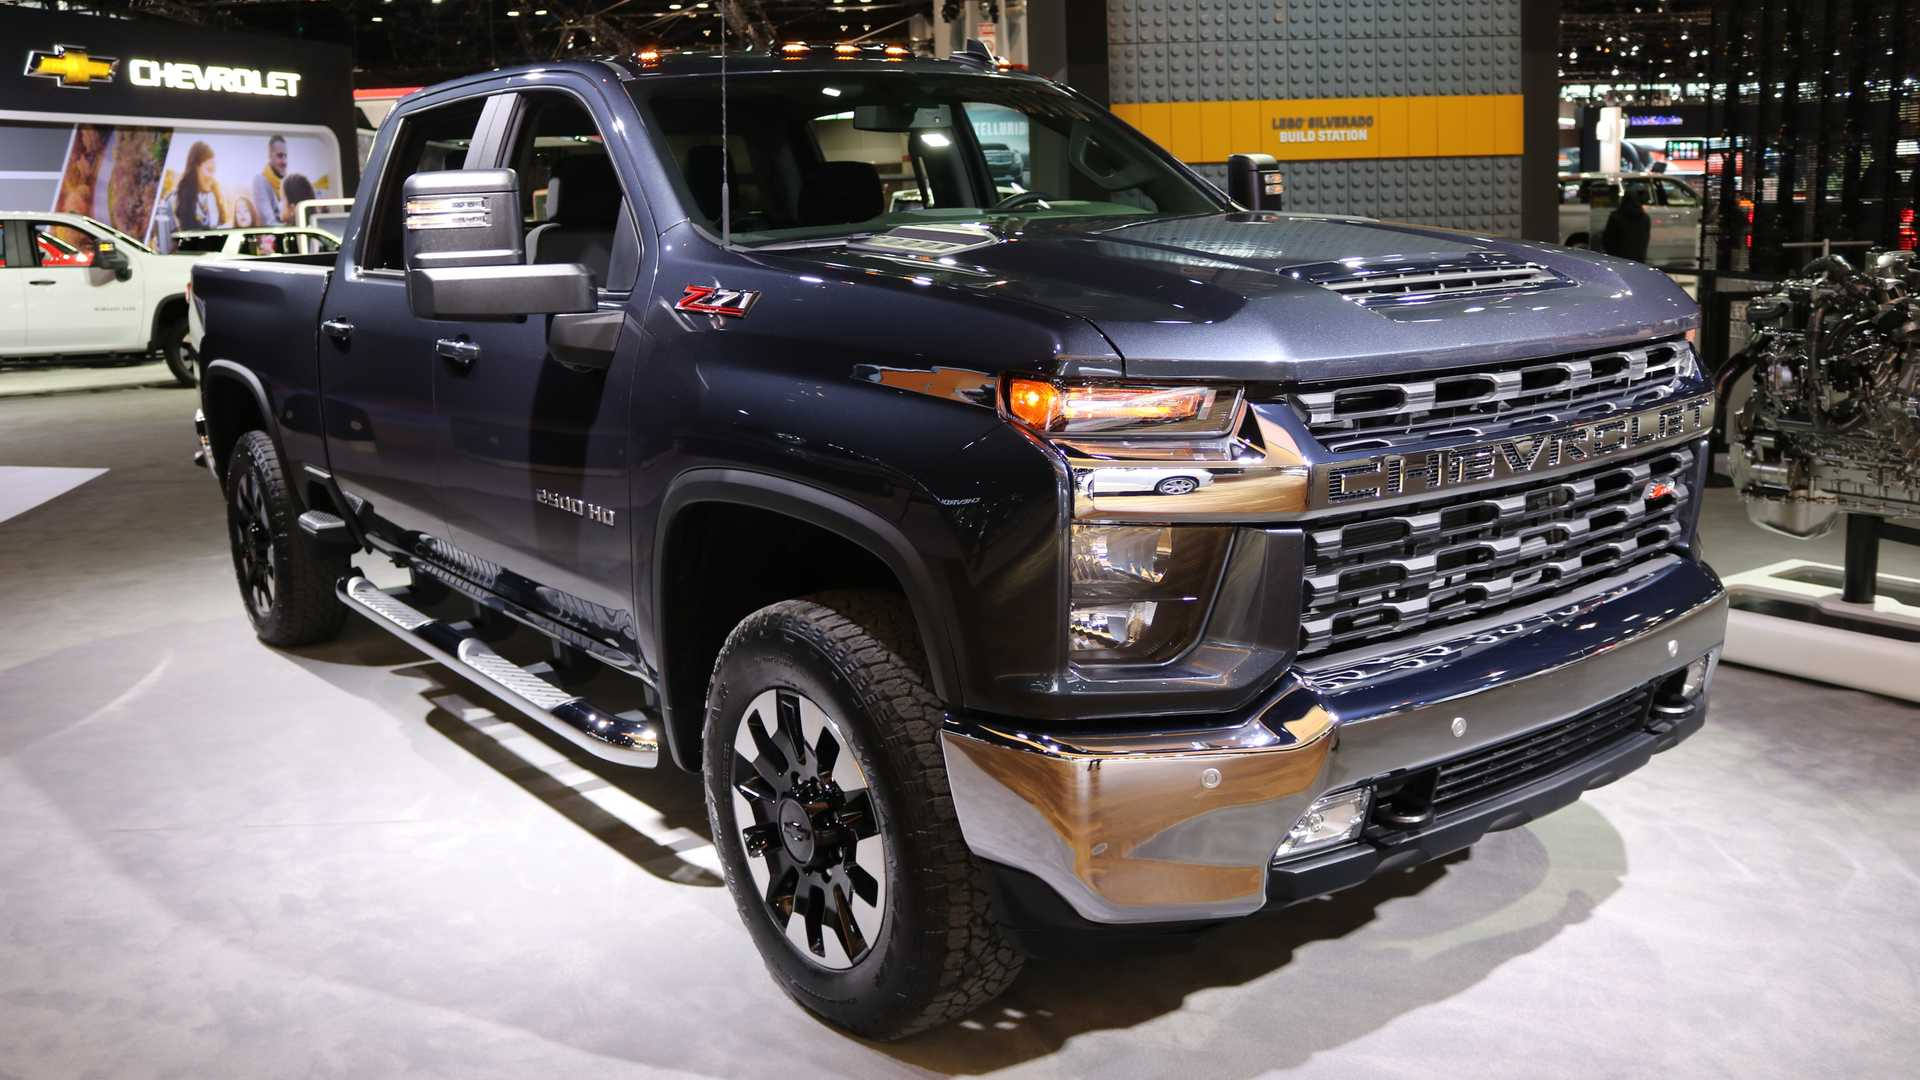 73 Great 2020 Chevrolet 2500 Ltz Redesign for 2020 Chevrolet 2500 Ltz